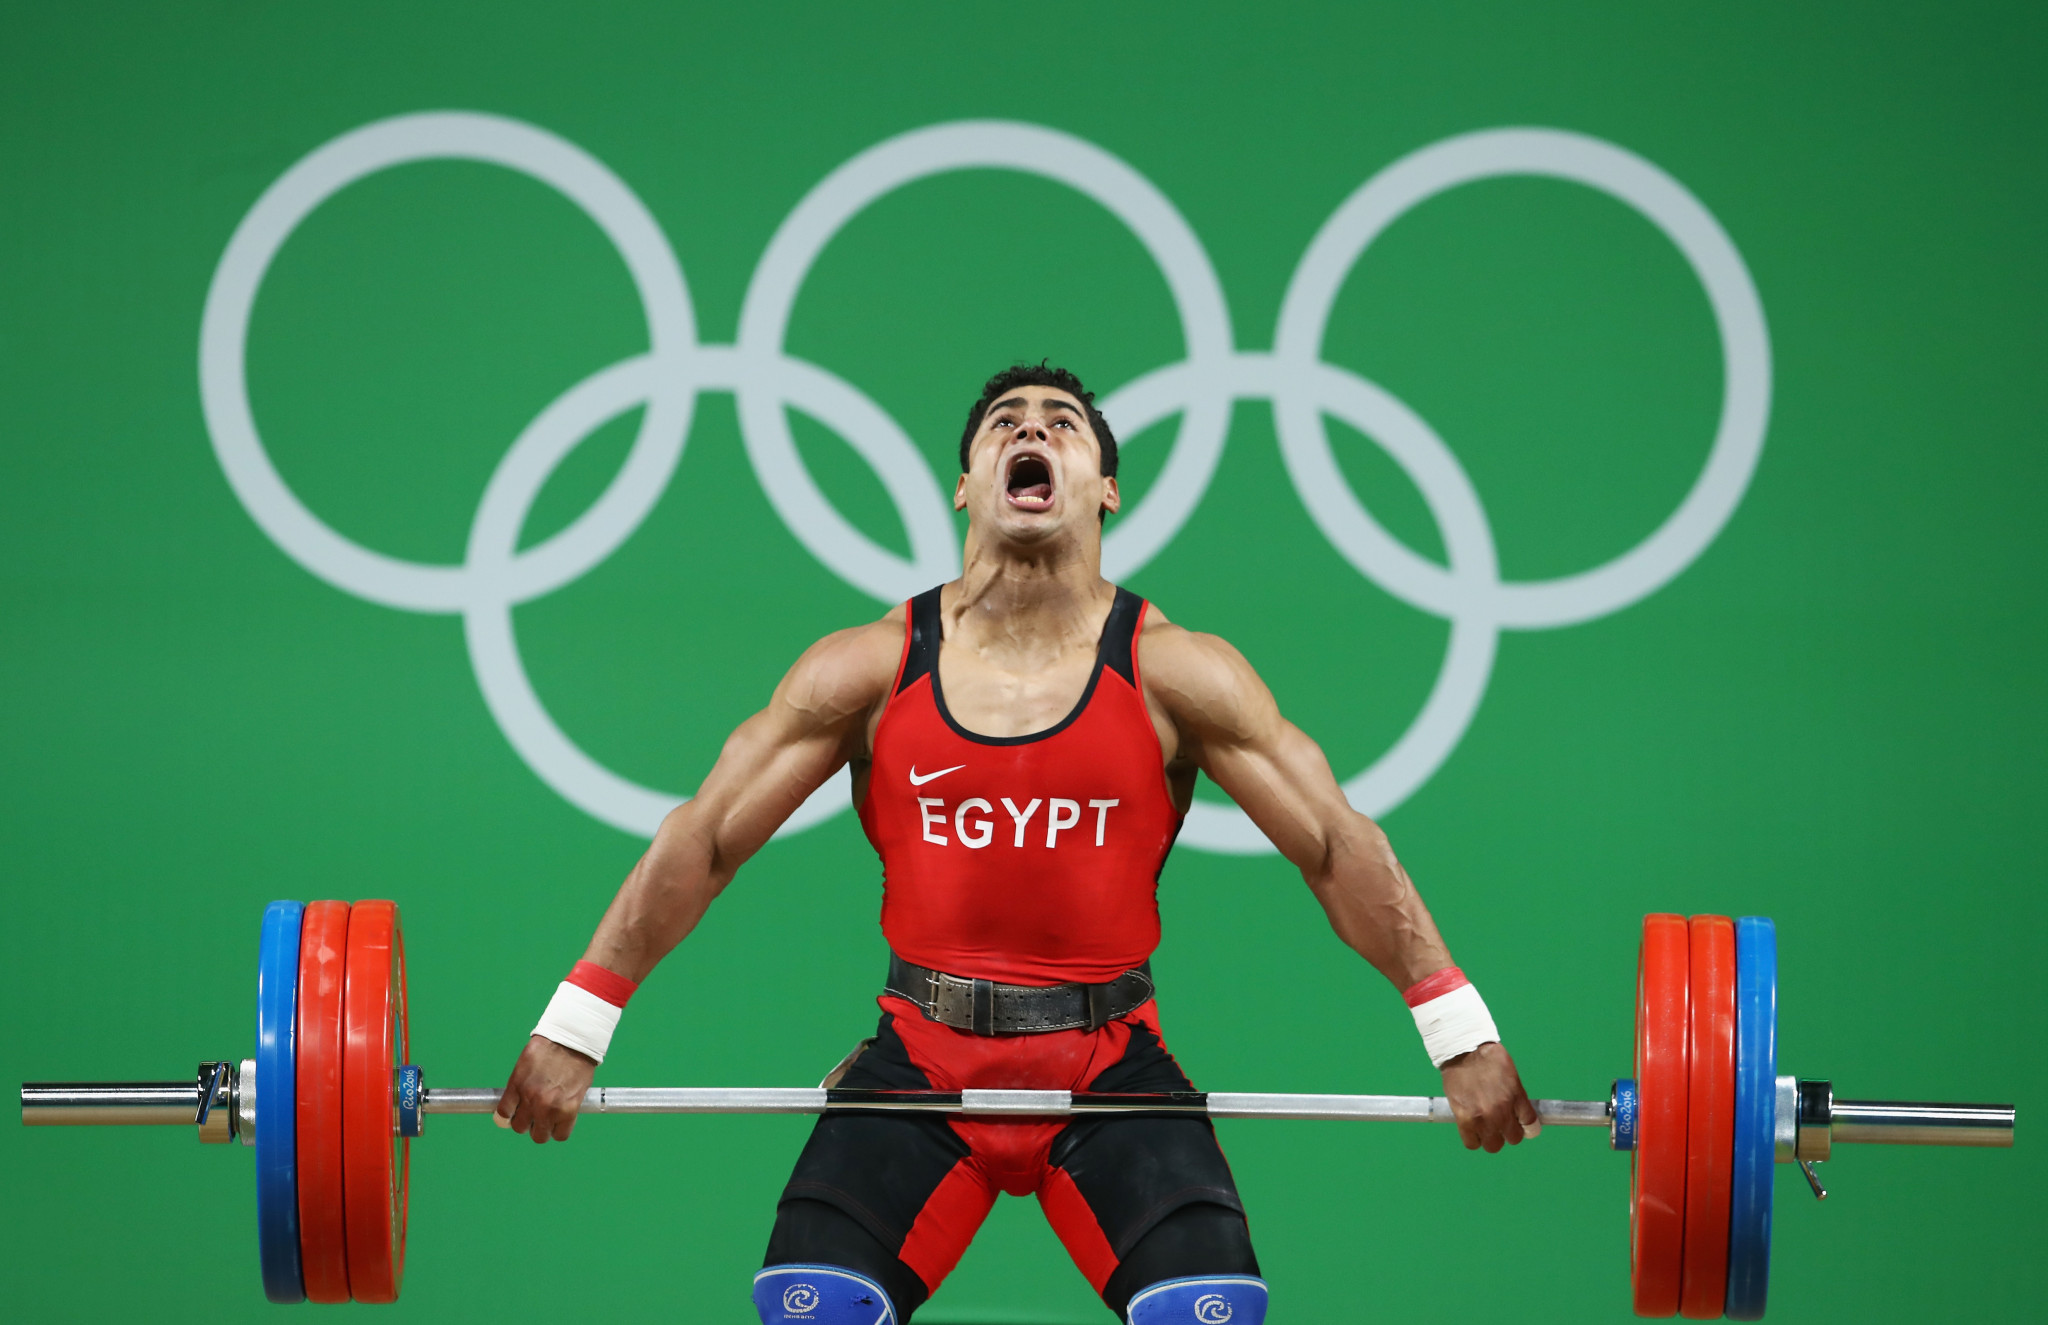 Egypt won two weightlifting medals at Rio 2016 but is banned from the sport at Tokyo 2020 ©Getty Images